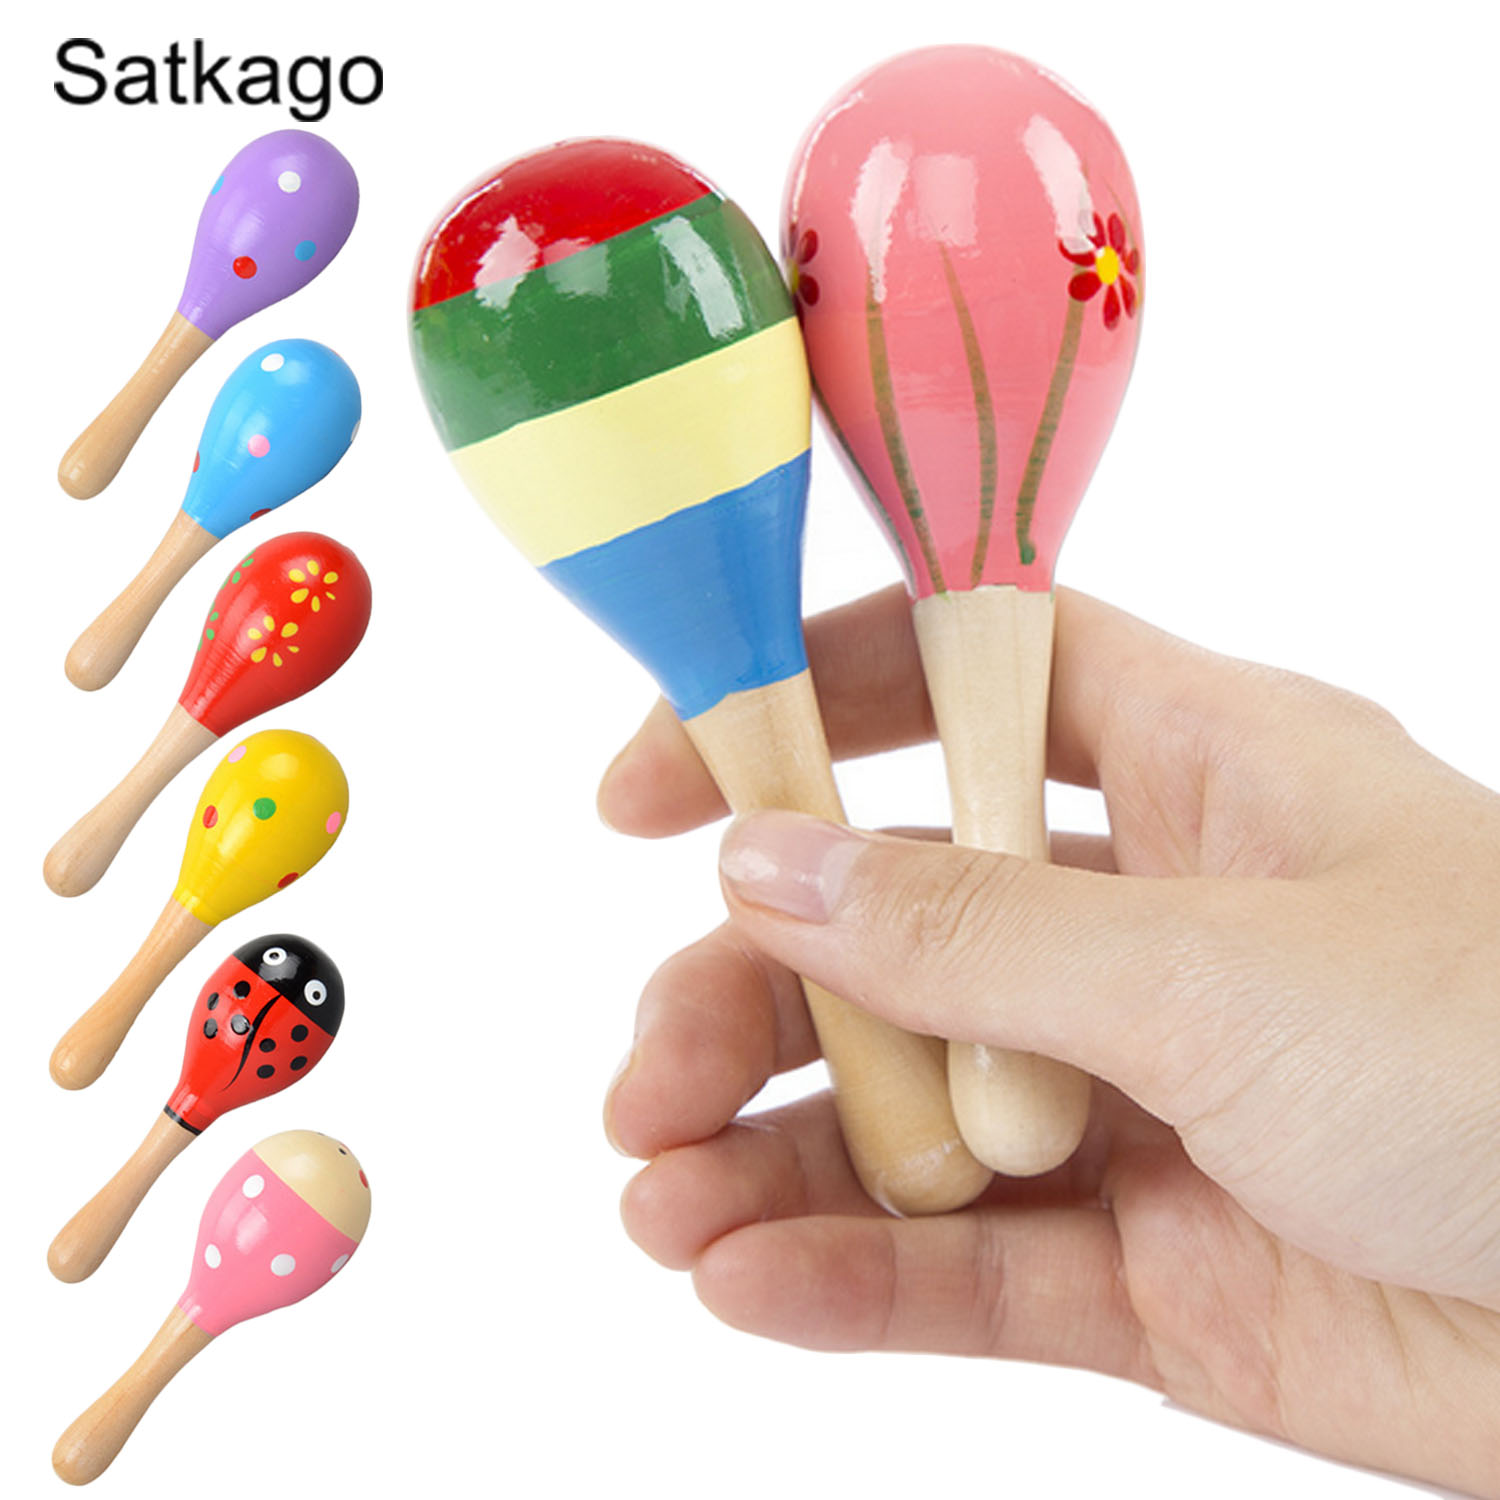 6 PCS Cute Colorful Wooden Sand Hammer Maracas Maraca Rattle Shaker Madera Toy Baby Chil ...